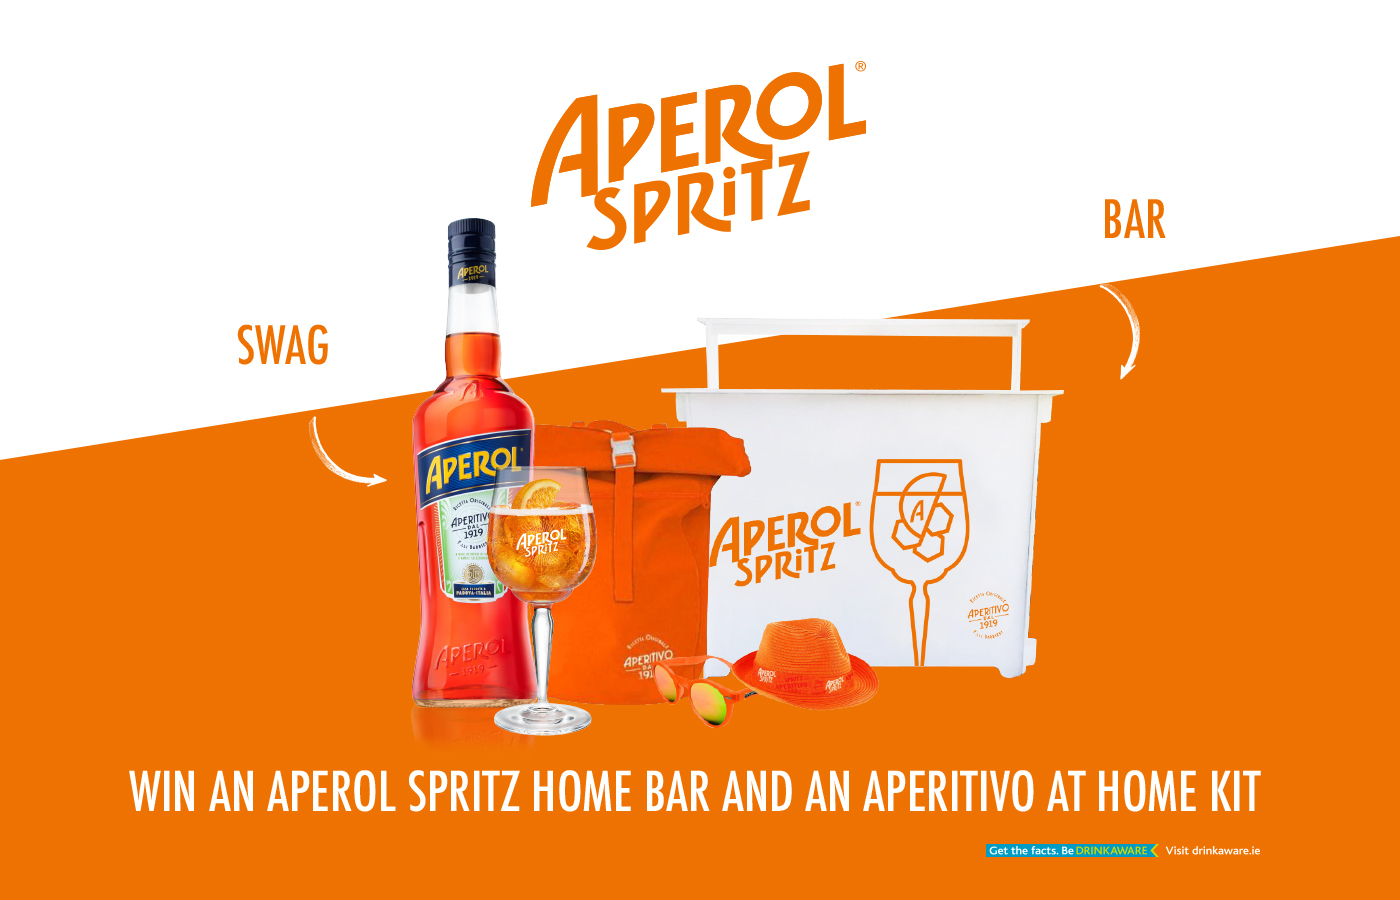 Win an Aperol Spritz home bar and an aperativo at home kit